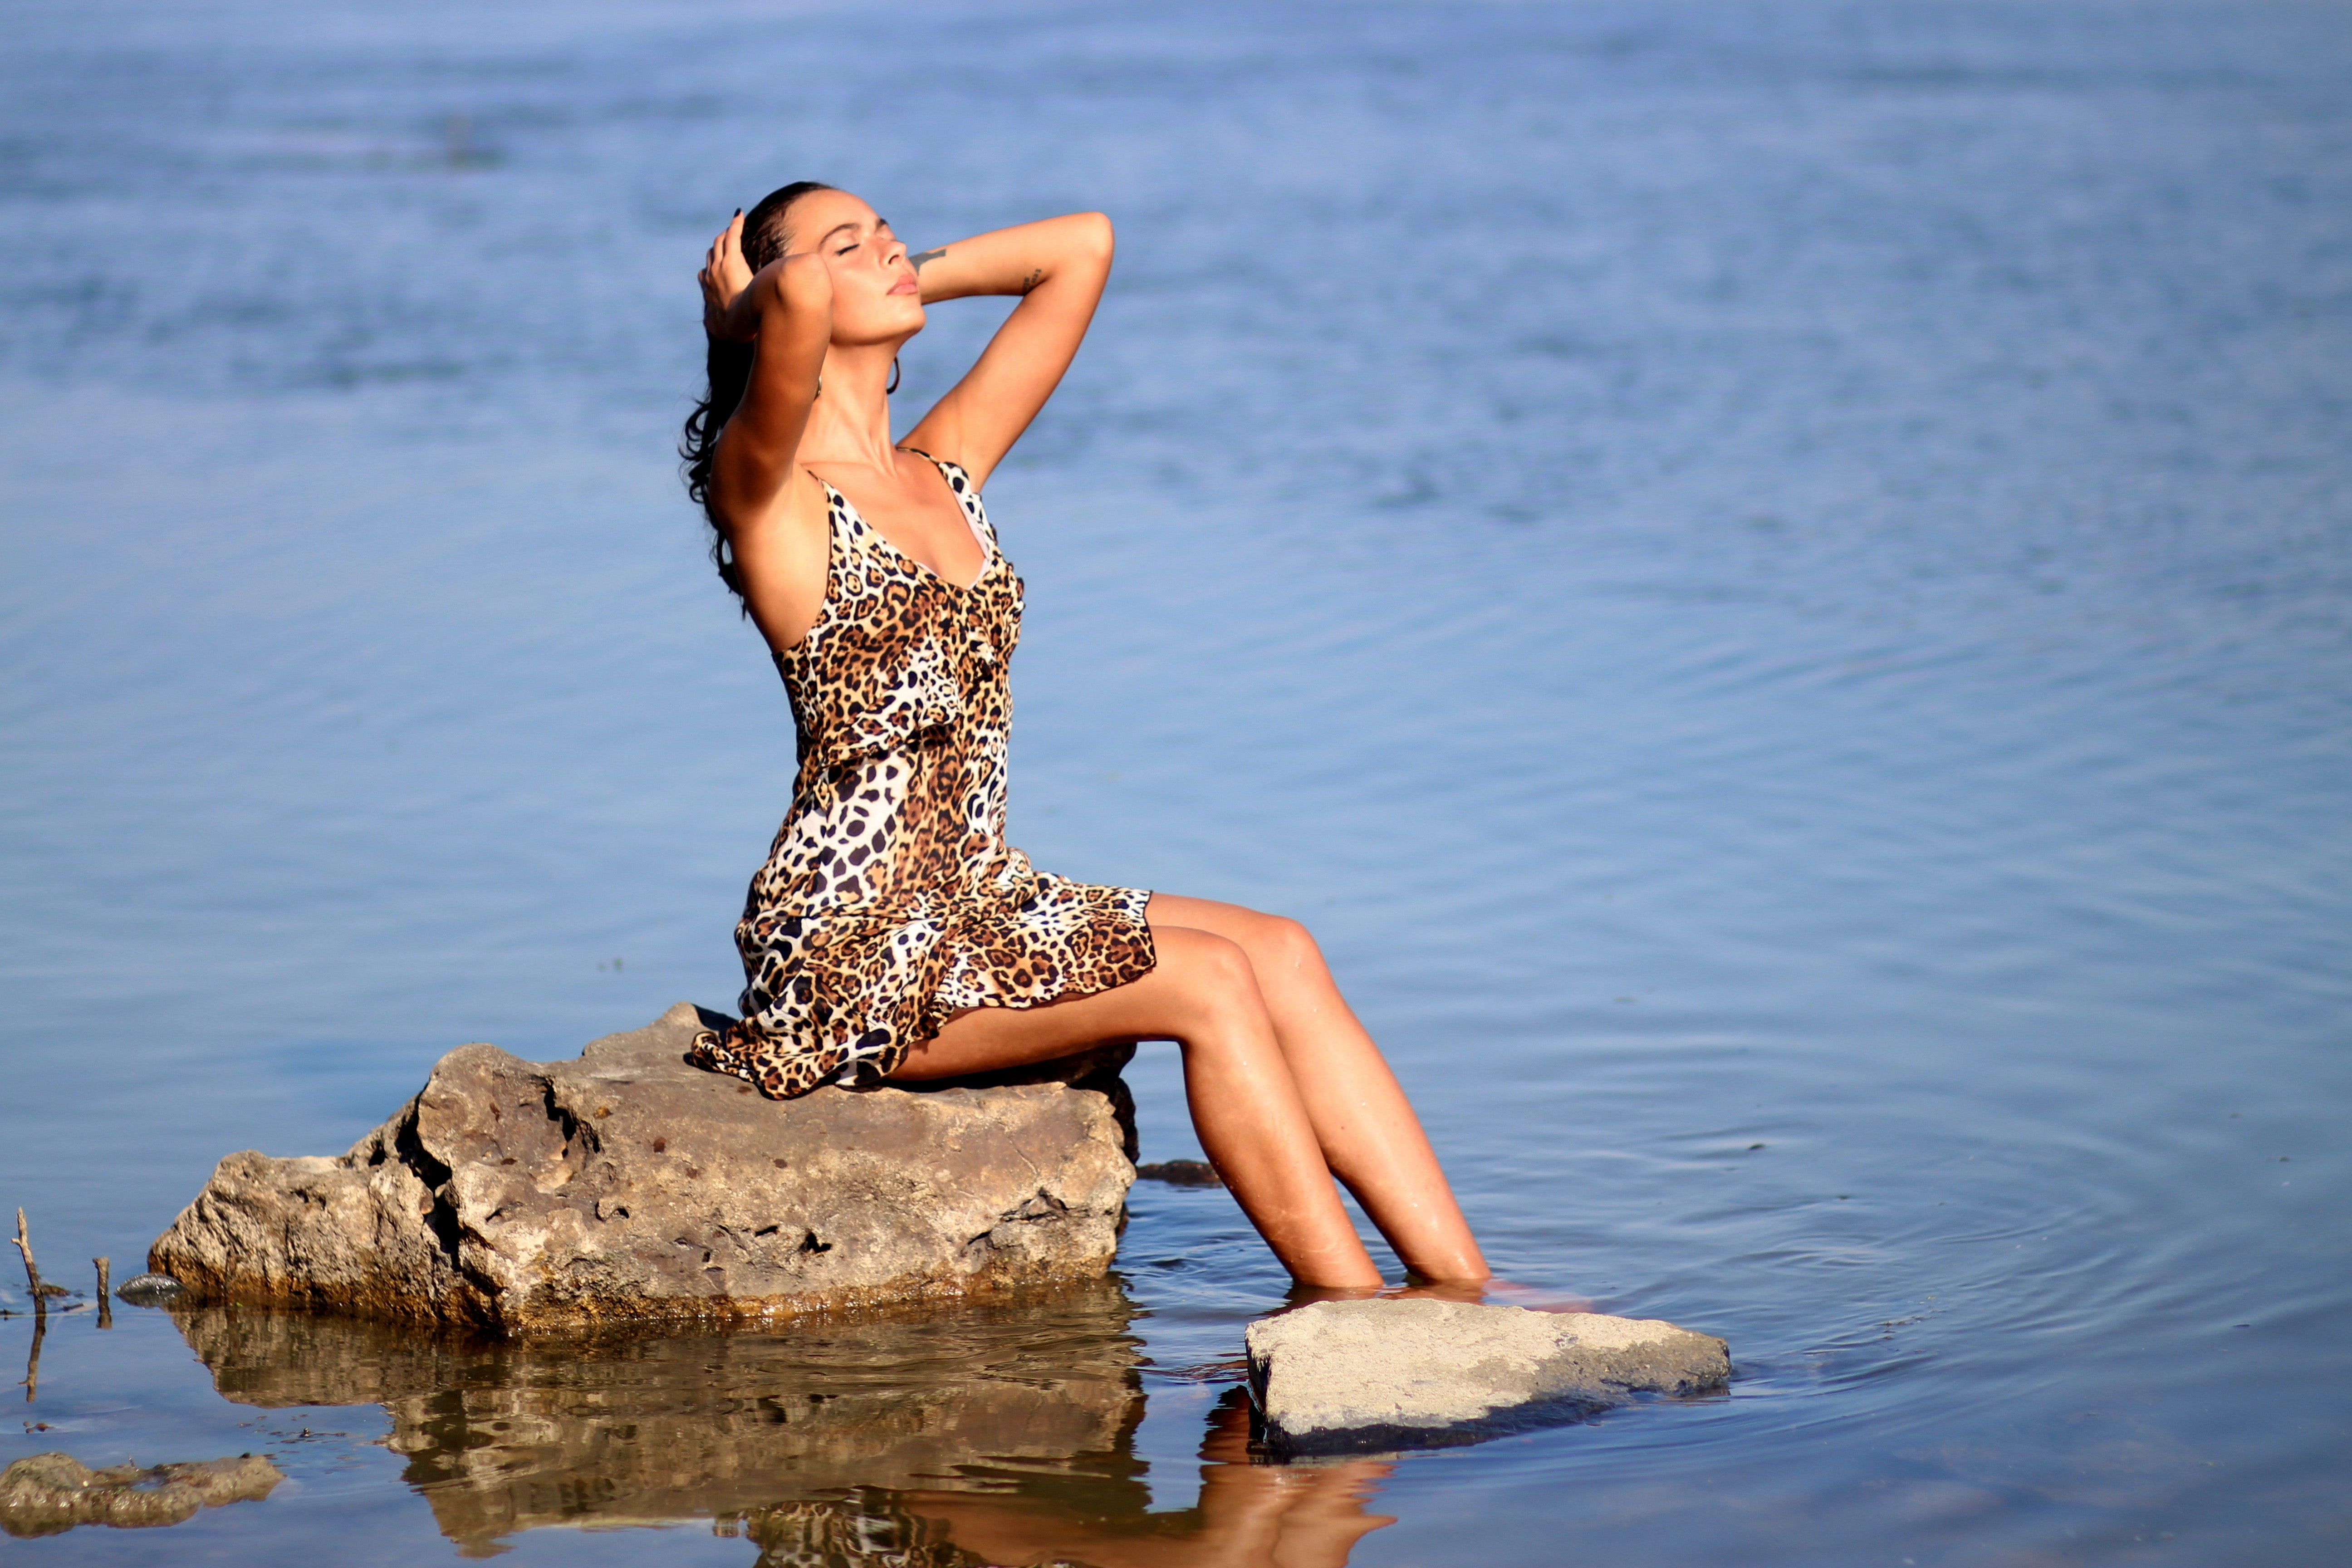 Sitting Woman Wearing Leopard Tank Mini Dress on Body of Water, Attractive, Outdoors, Water, Sexy, HQ Photo